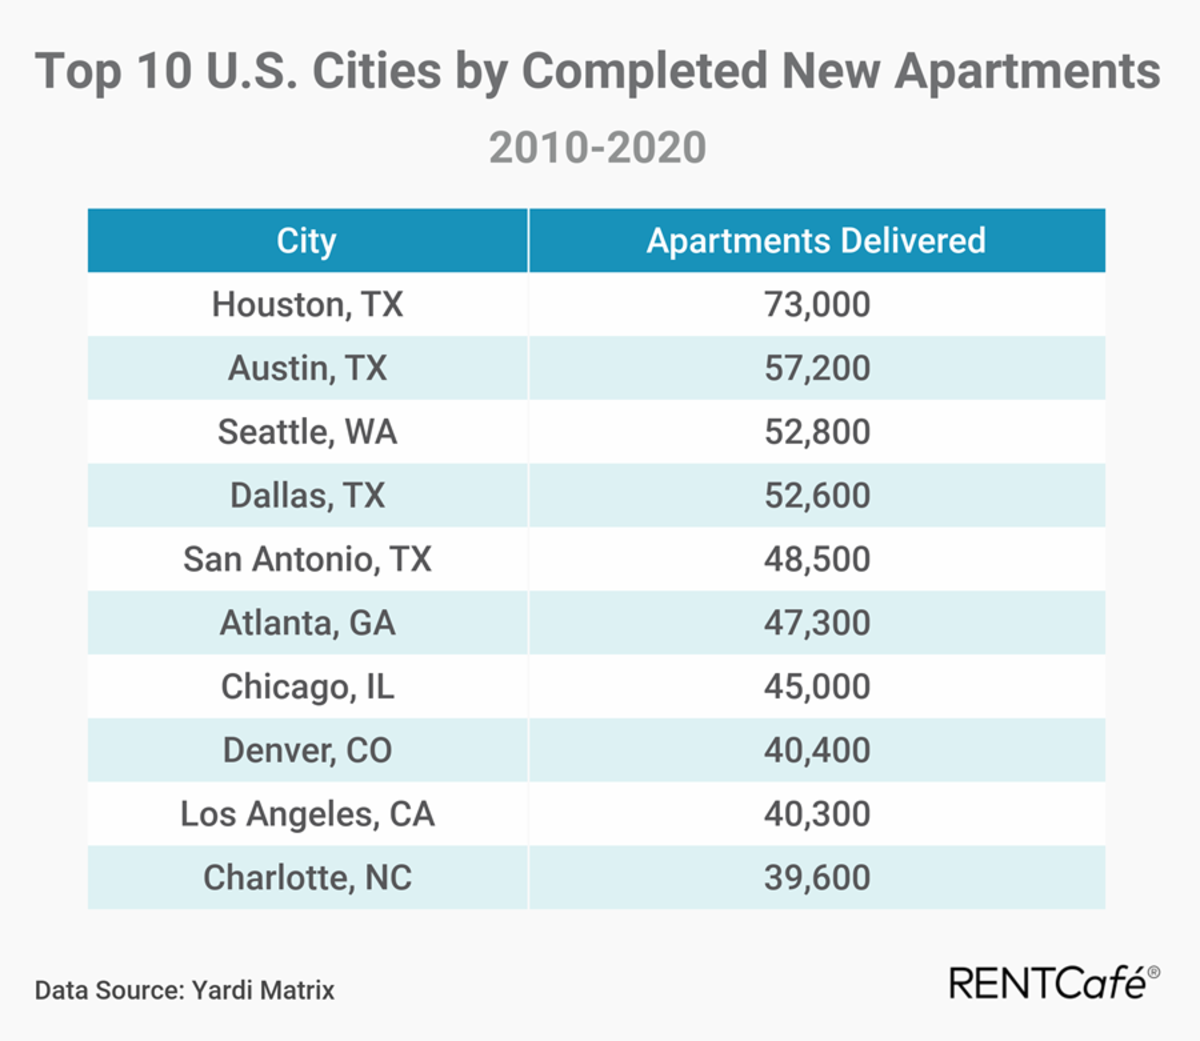 Top 10 Cities by Completed New Apartments